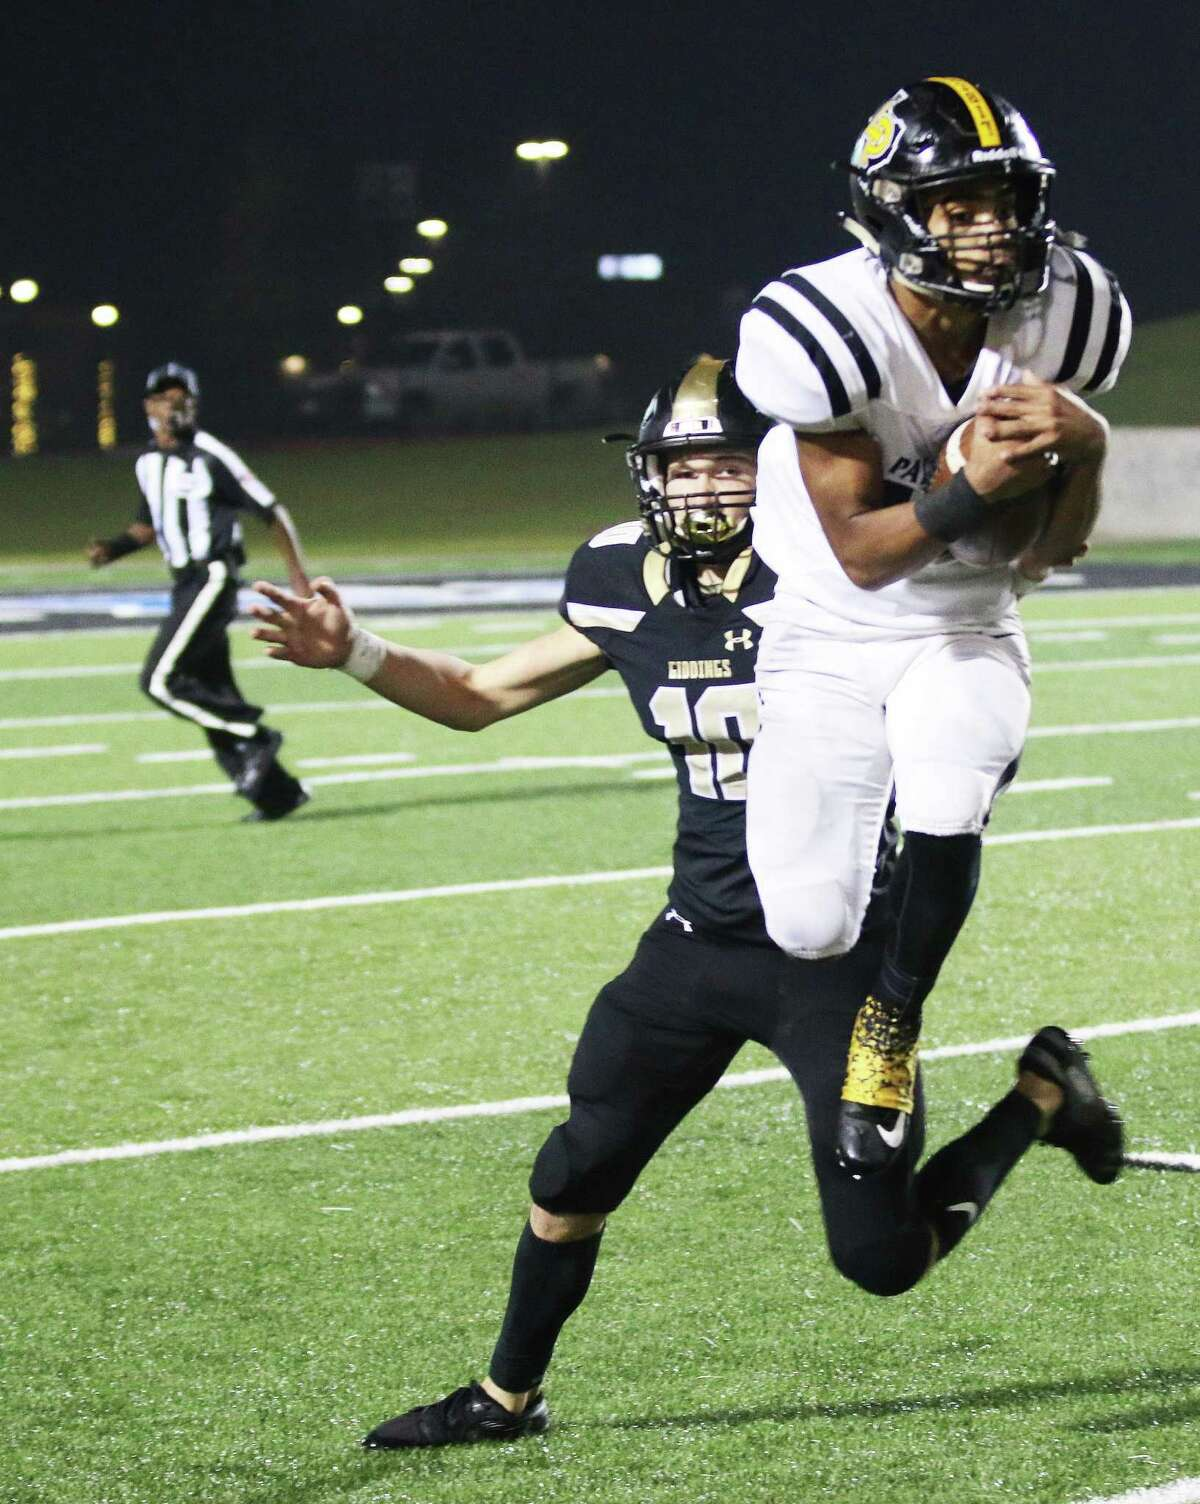 Jeremiah Guillory goes up for a pass from Slack to help the Panthers move the ball down the field Friday night in their Area round playoff game against Giddings.